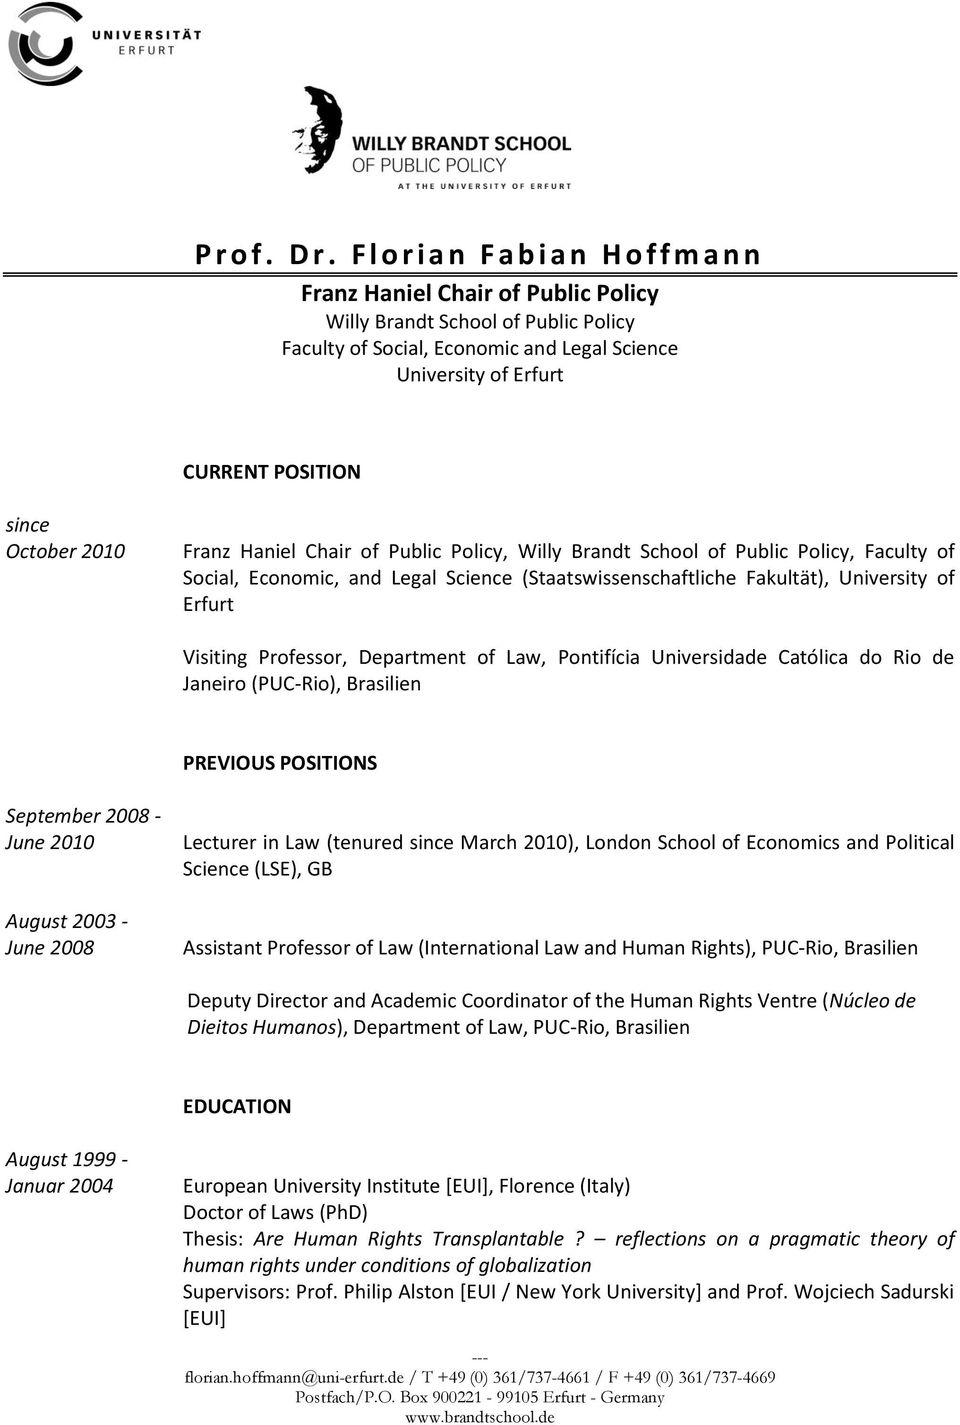 since October 2010 Franz Haniel Chair of Public Policy, Willy Brandt School of Public Policy, Faculty of Social, Economic, and Legal Science (Staatswissenschaftliche Fakultät), University of Erfurt